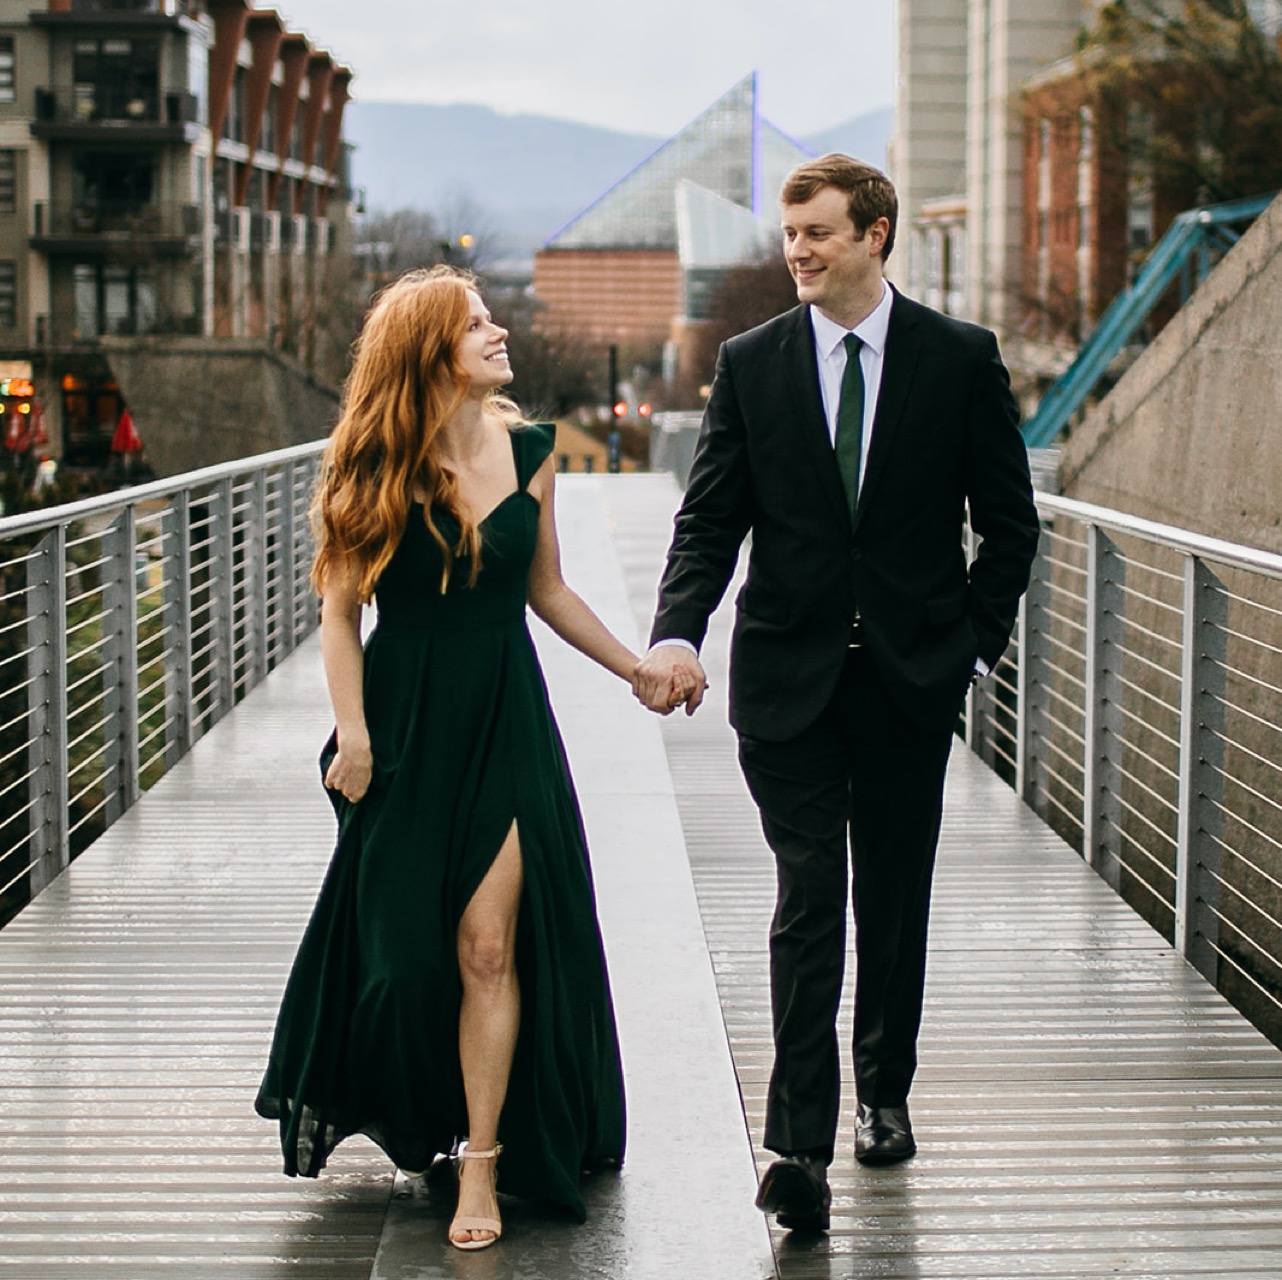 An engaged couple walks hand-in-hand on the Walking Bridge during their Chattanooga engagement photos.